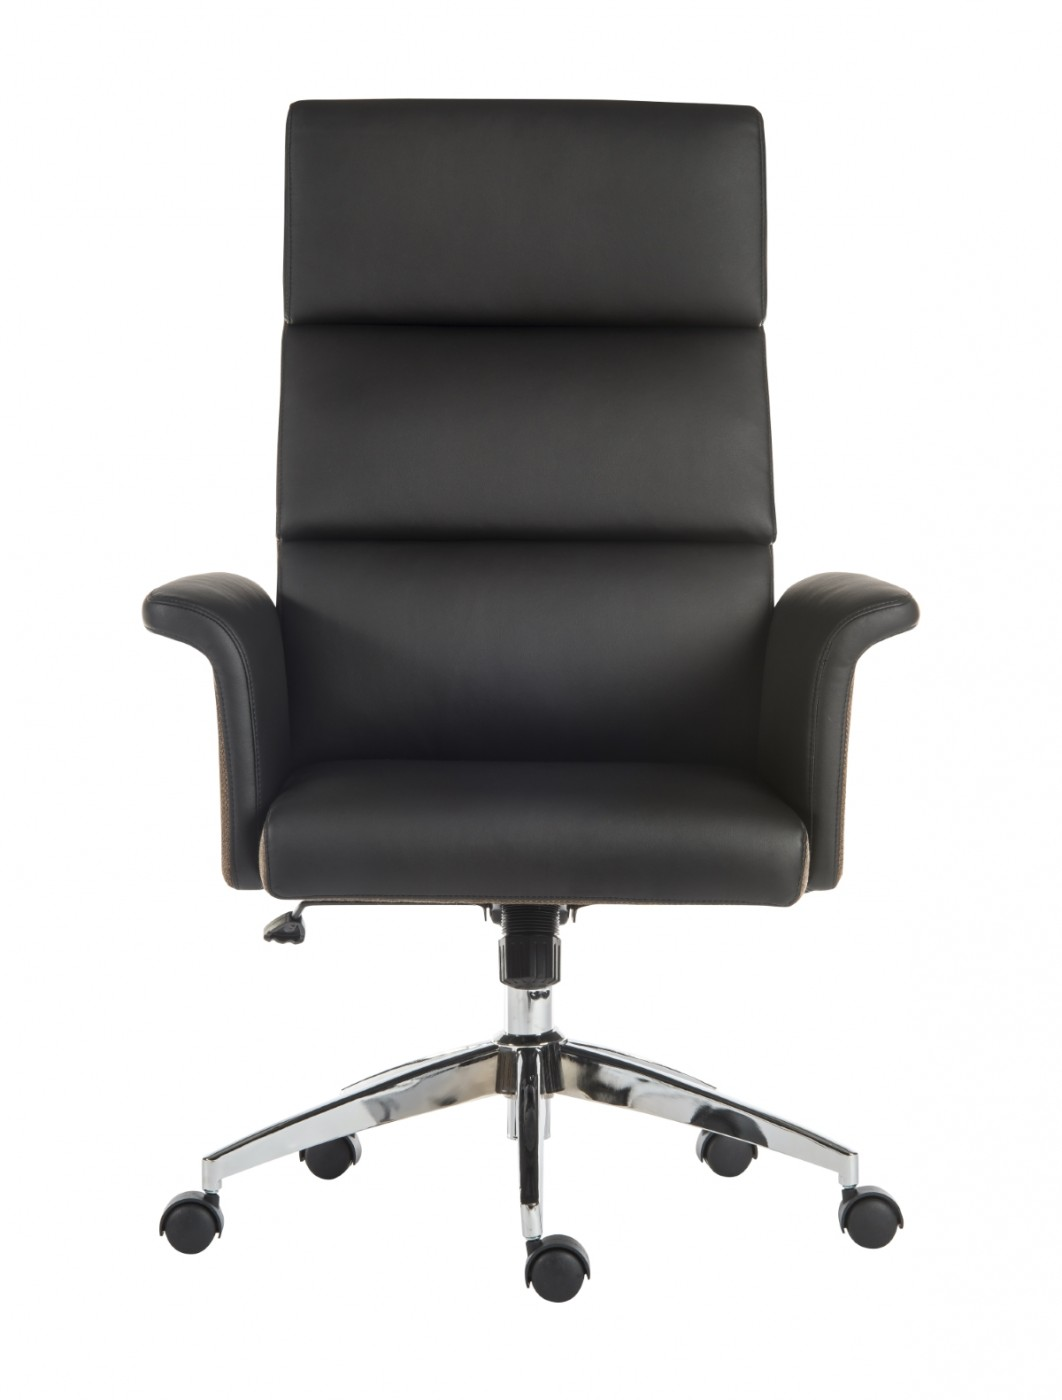 Office Chairs   Teknik Elegance High Back Executive Office Chair 6950BLK    Enlarged View